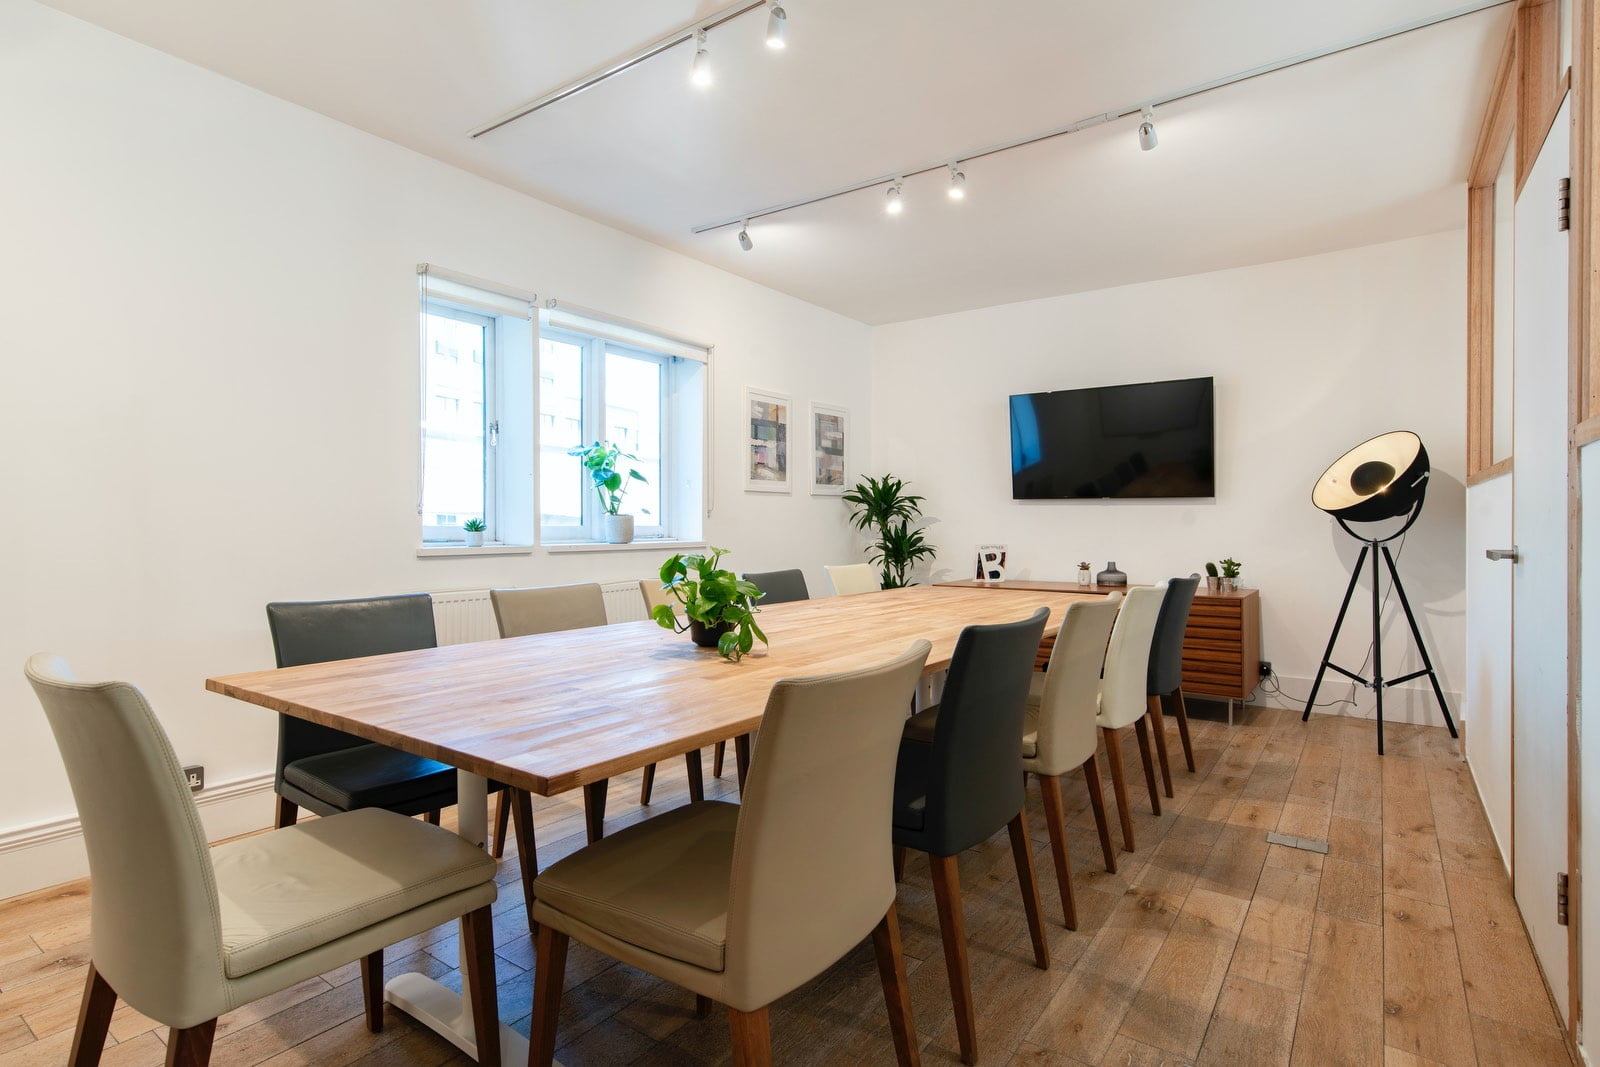 A guide to office rent in London - Office rent in Shoreditch